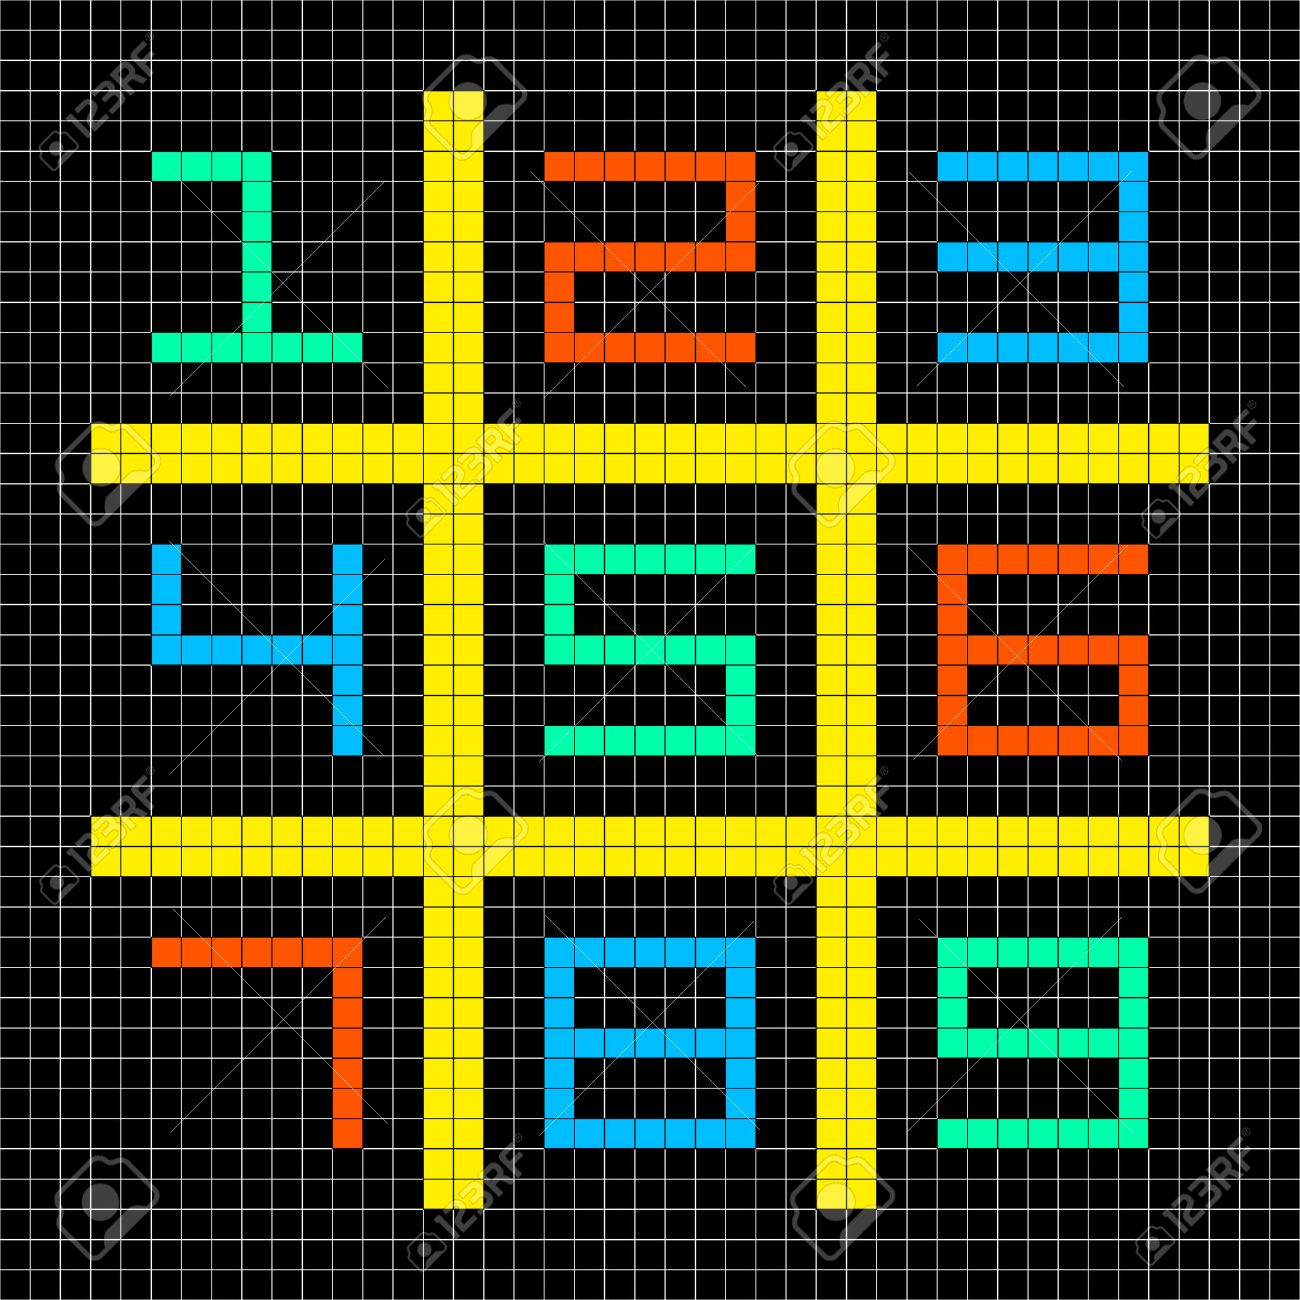 8-bit Pixel Art with Numbers 1-9 in a Sudoku Grid. Assets separated onto separate layers Stock Vector - 23659995